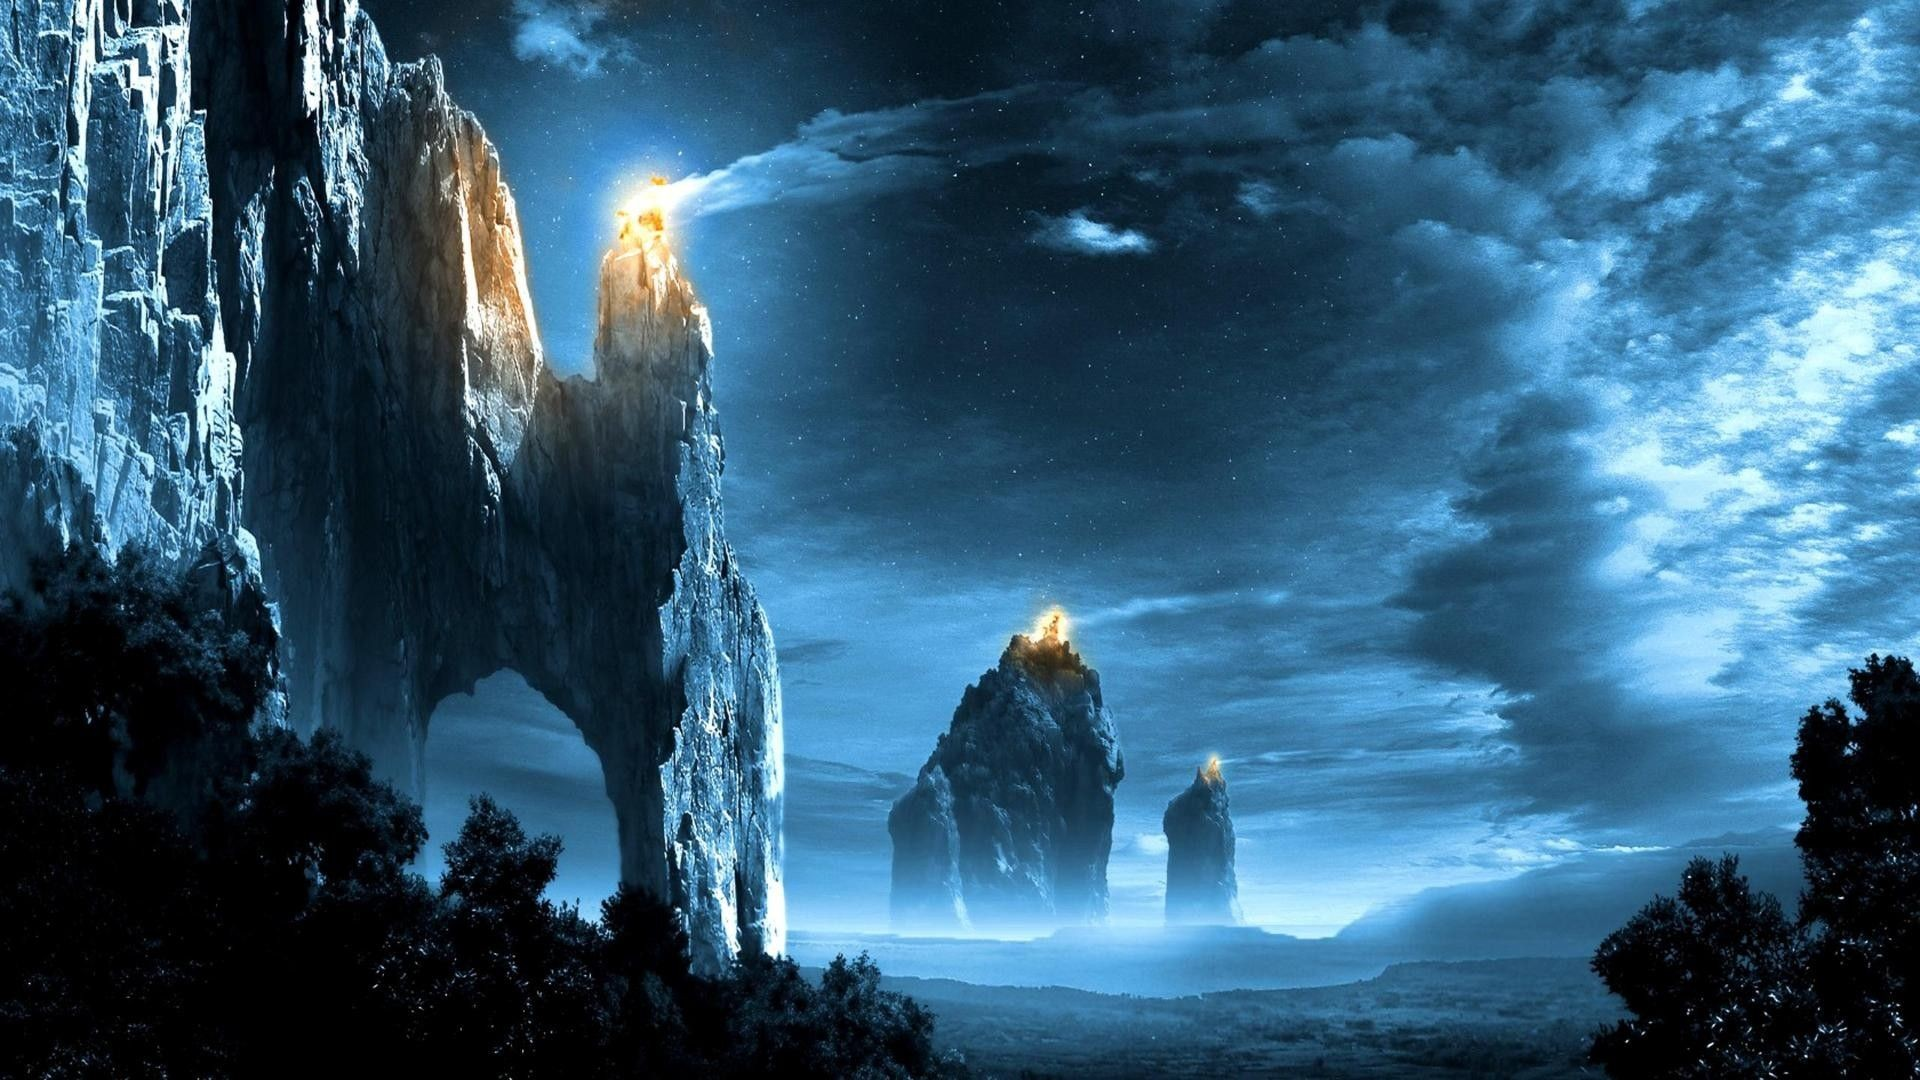 Lord Of The Rings Background Download Free Awesome High